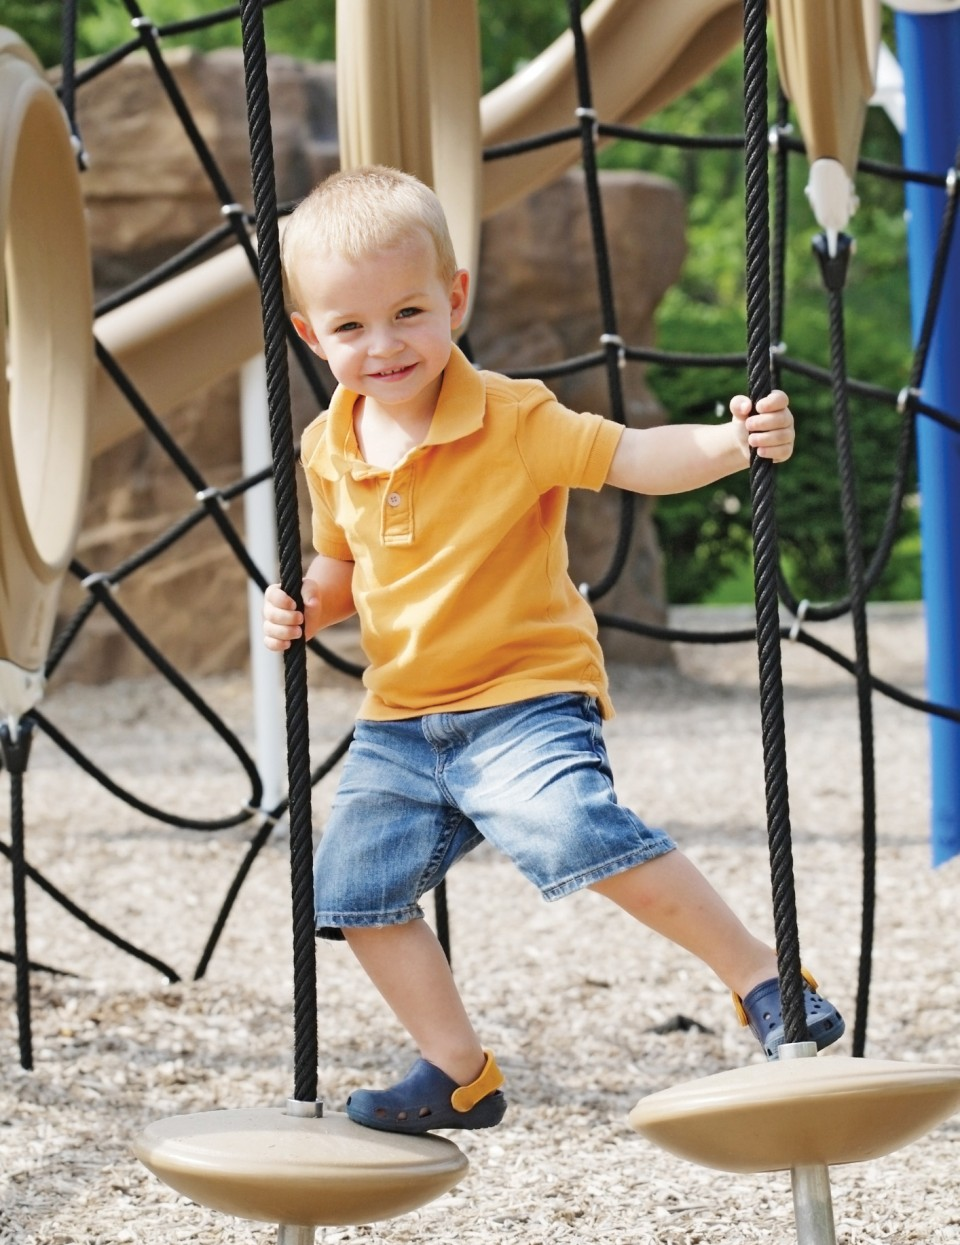 Image of child playing on obstacle course